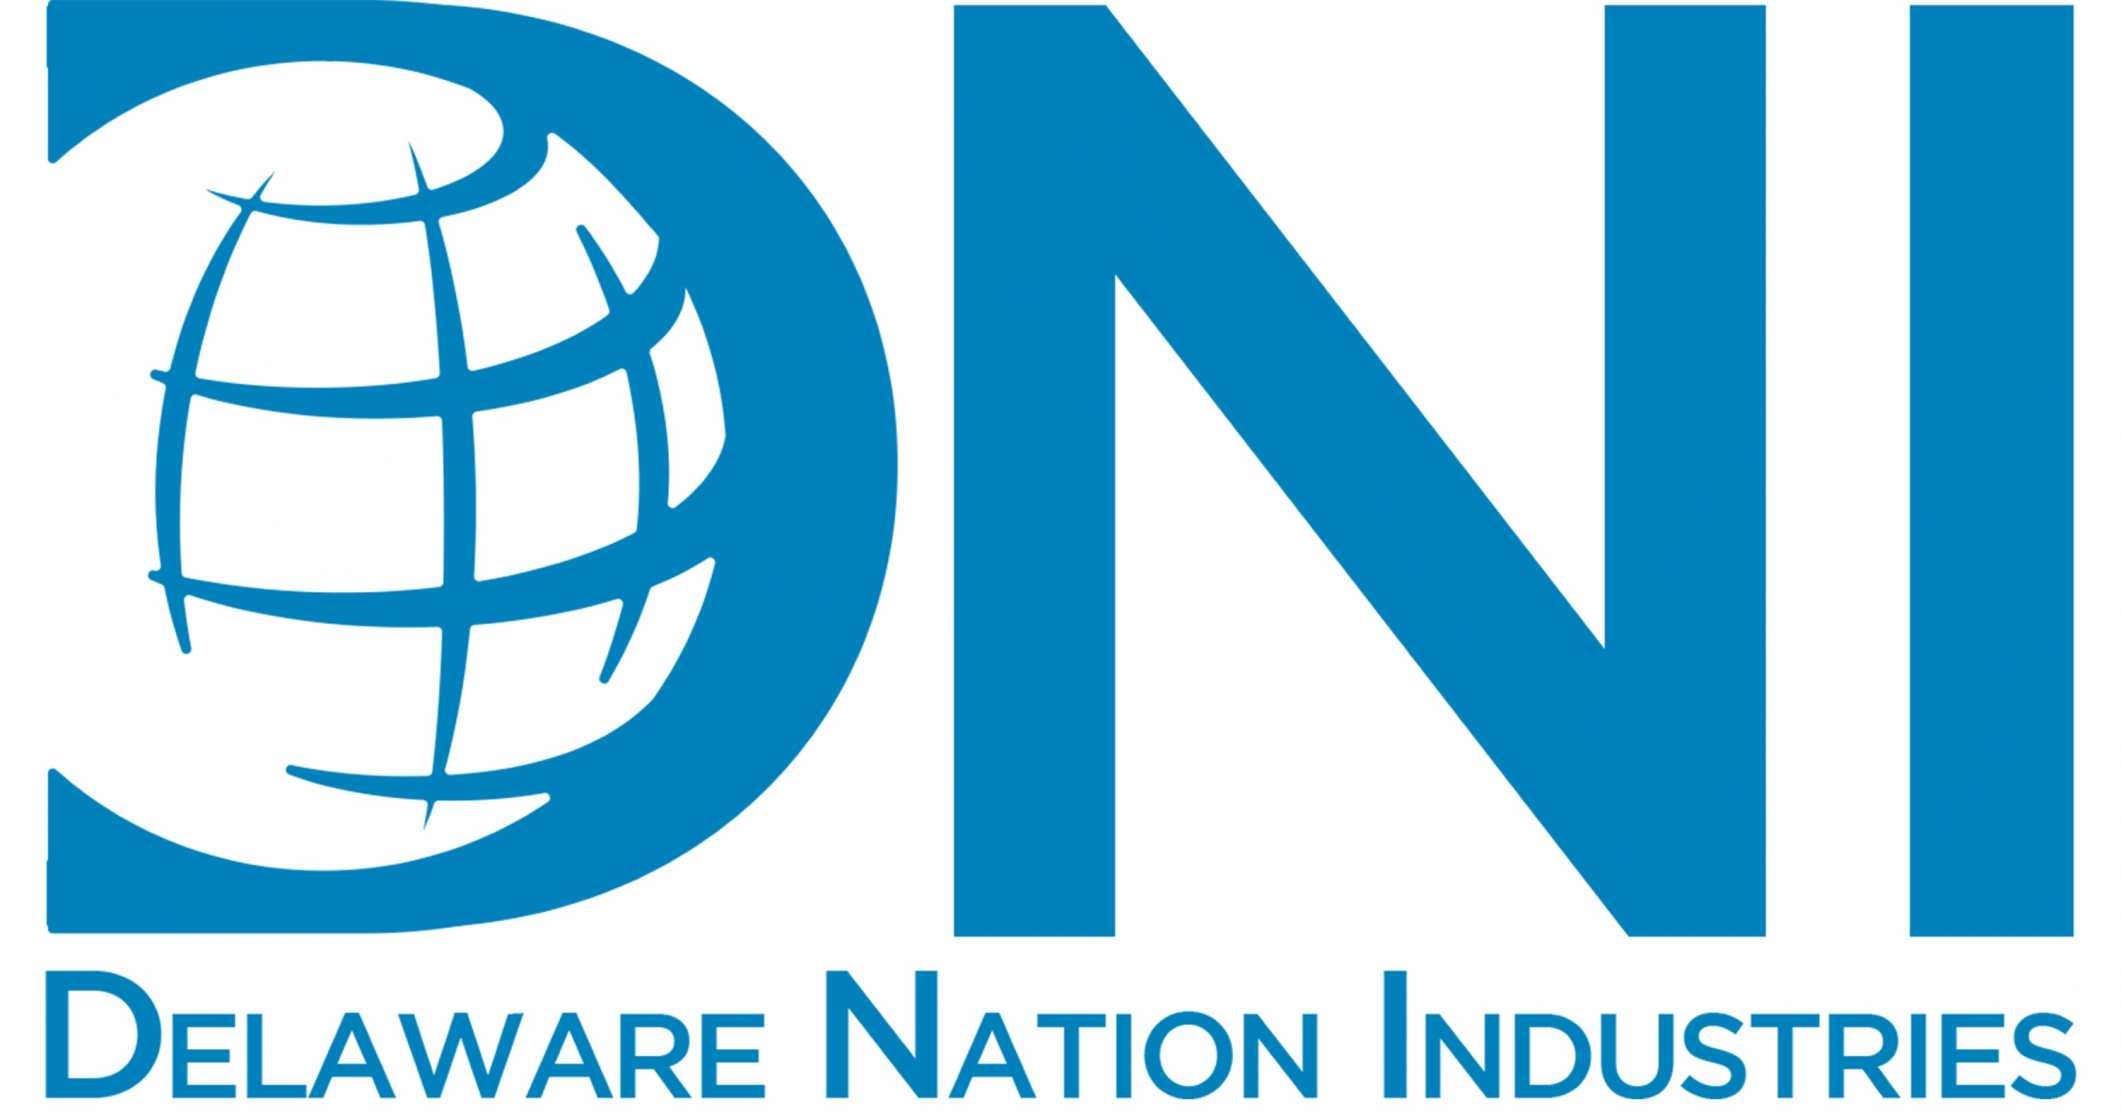 Delaware Nation Industries